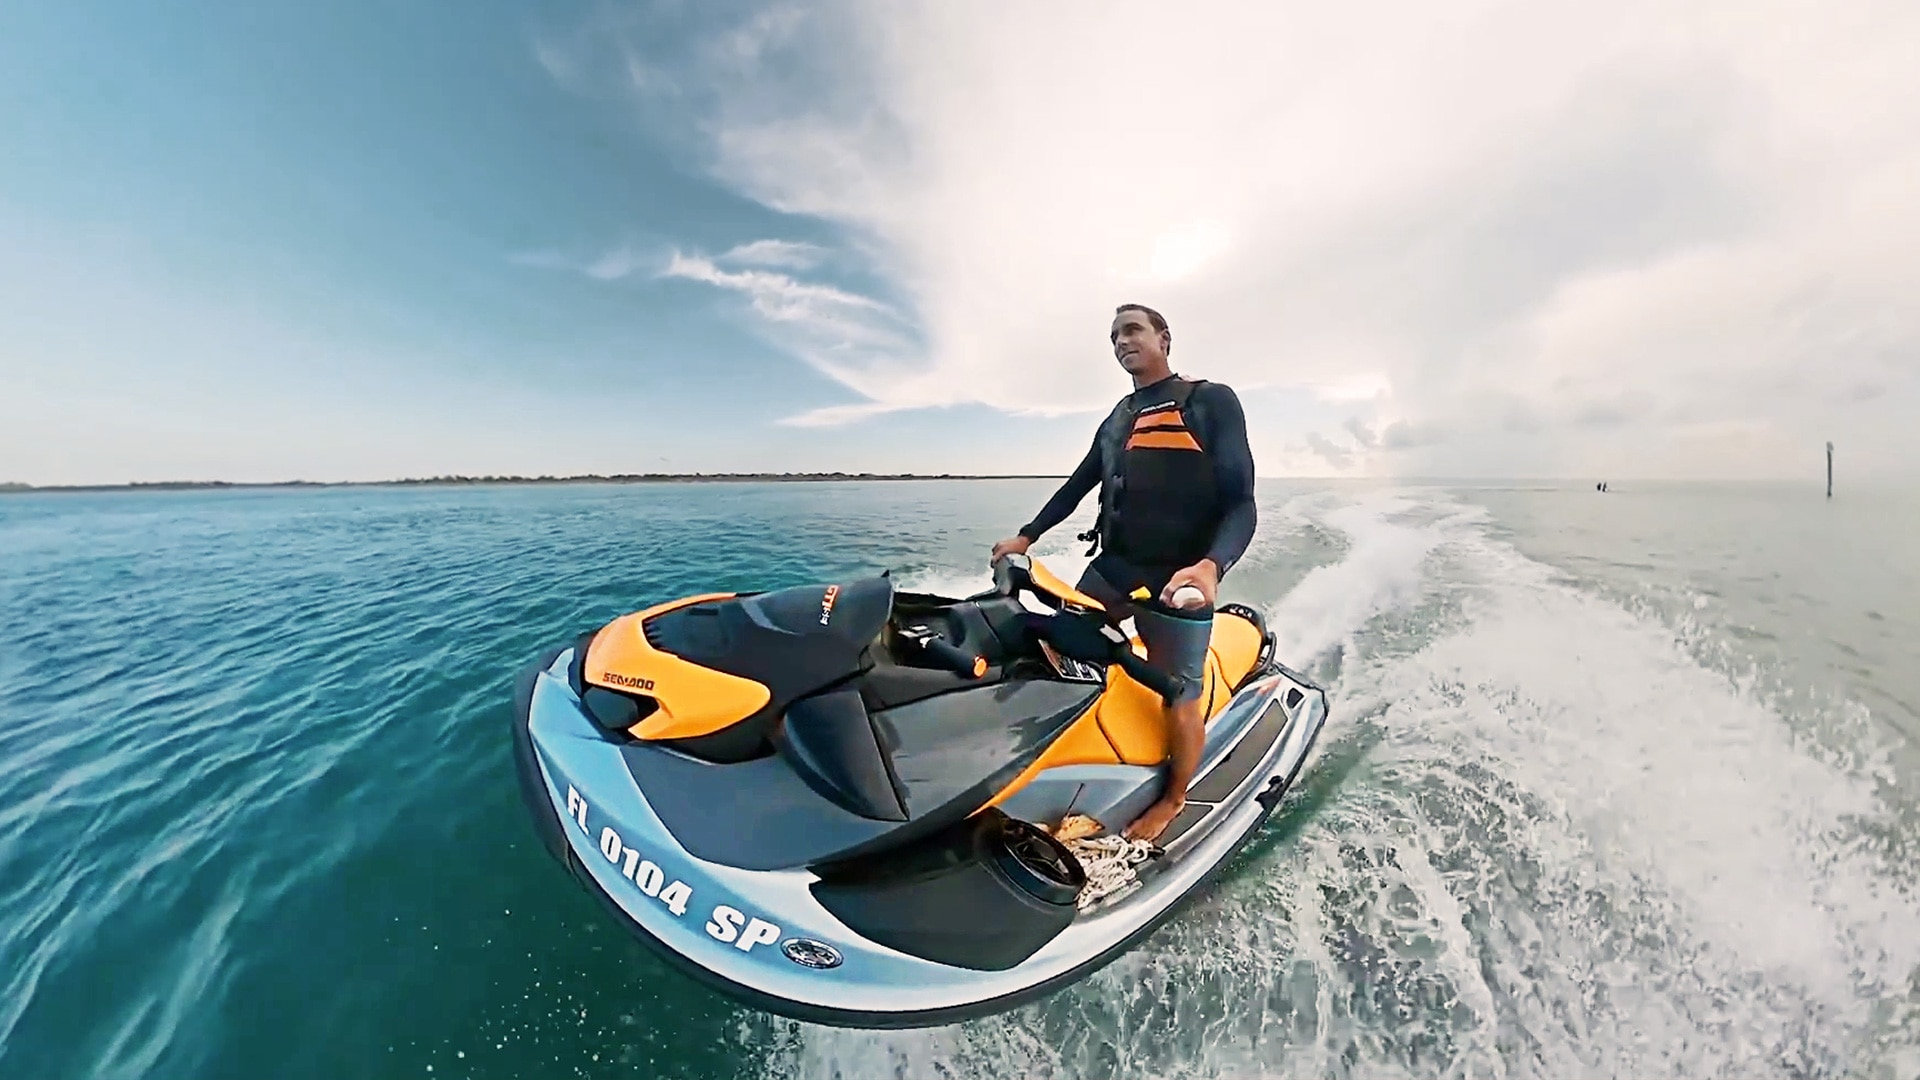 Brett's first Ride with Sea-Doo